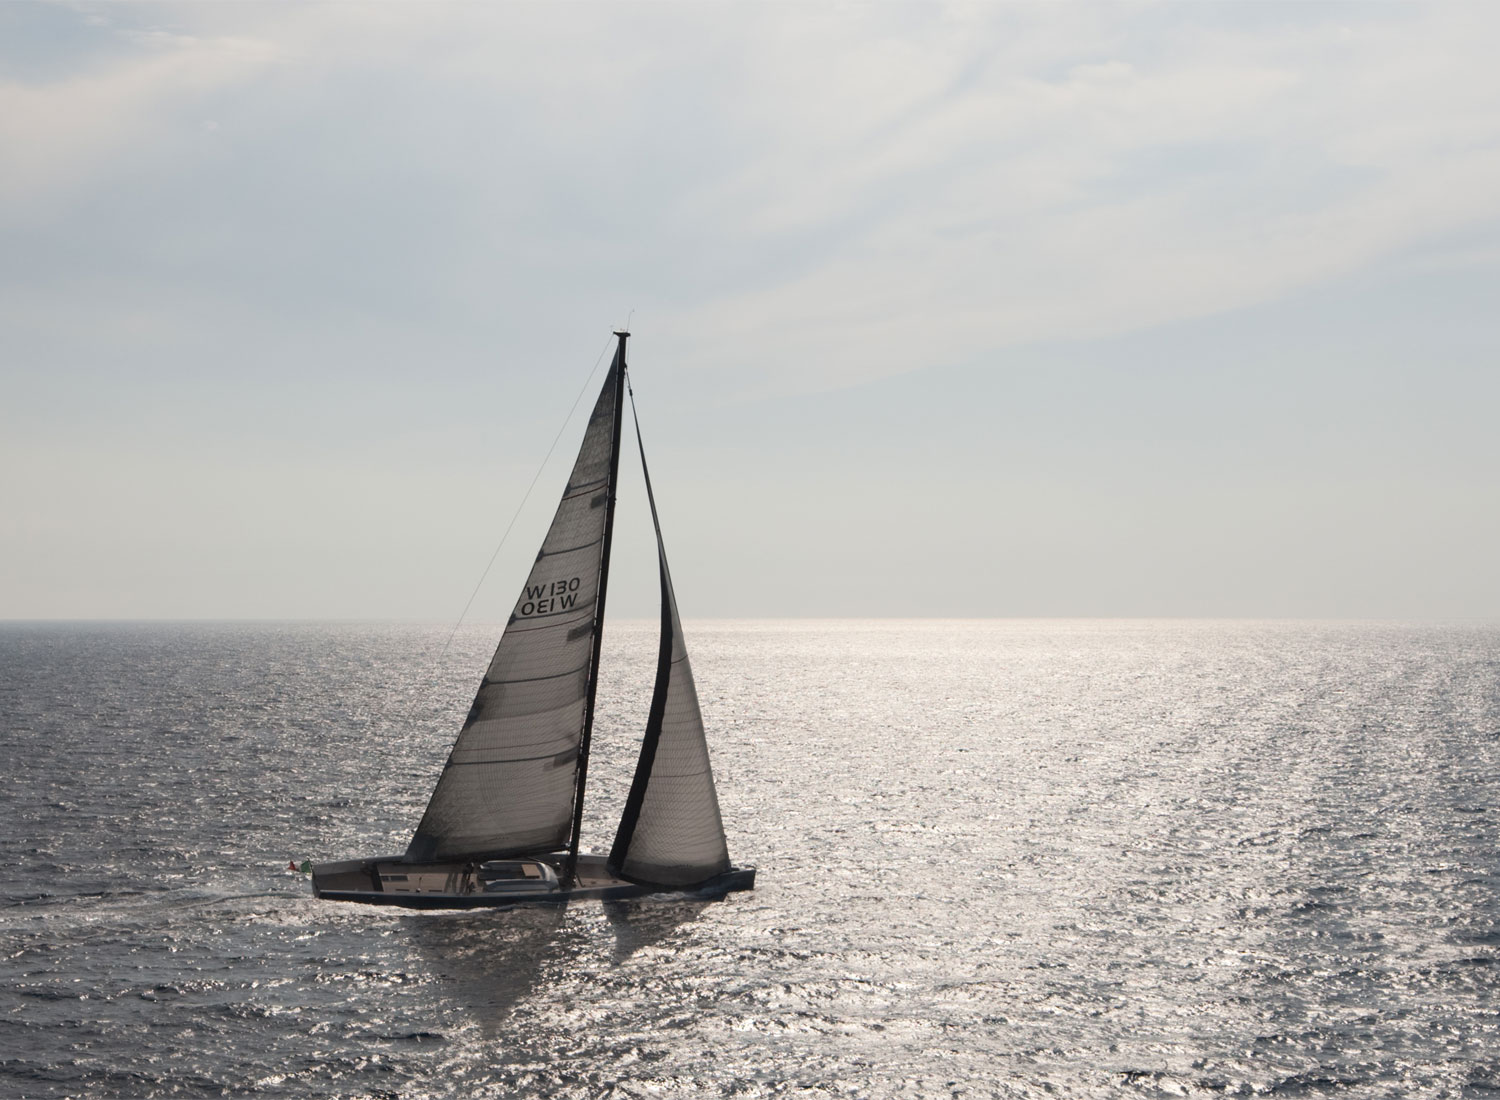 Racing Sailboat Wallpaper, wallpaper, Racing Sailboat Wallpaper hd ...